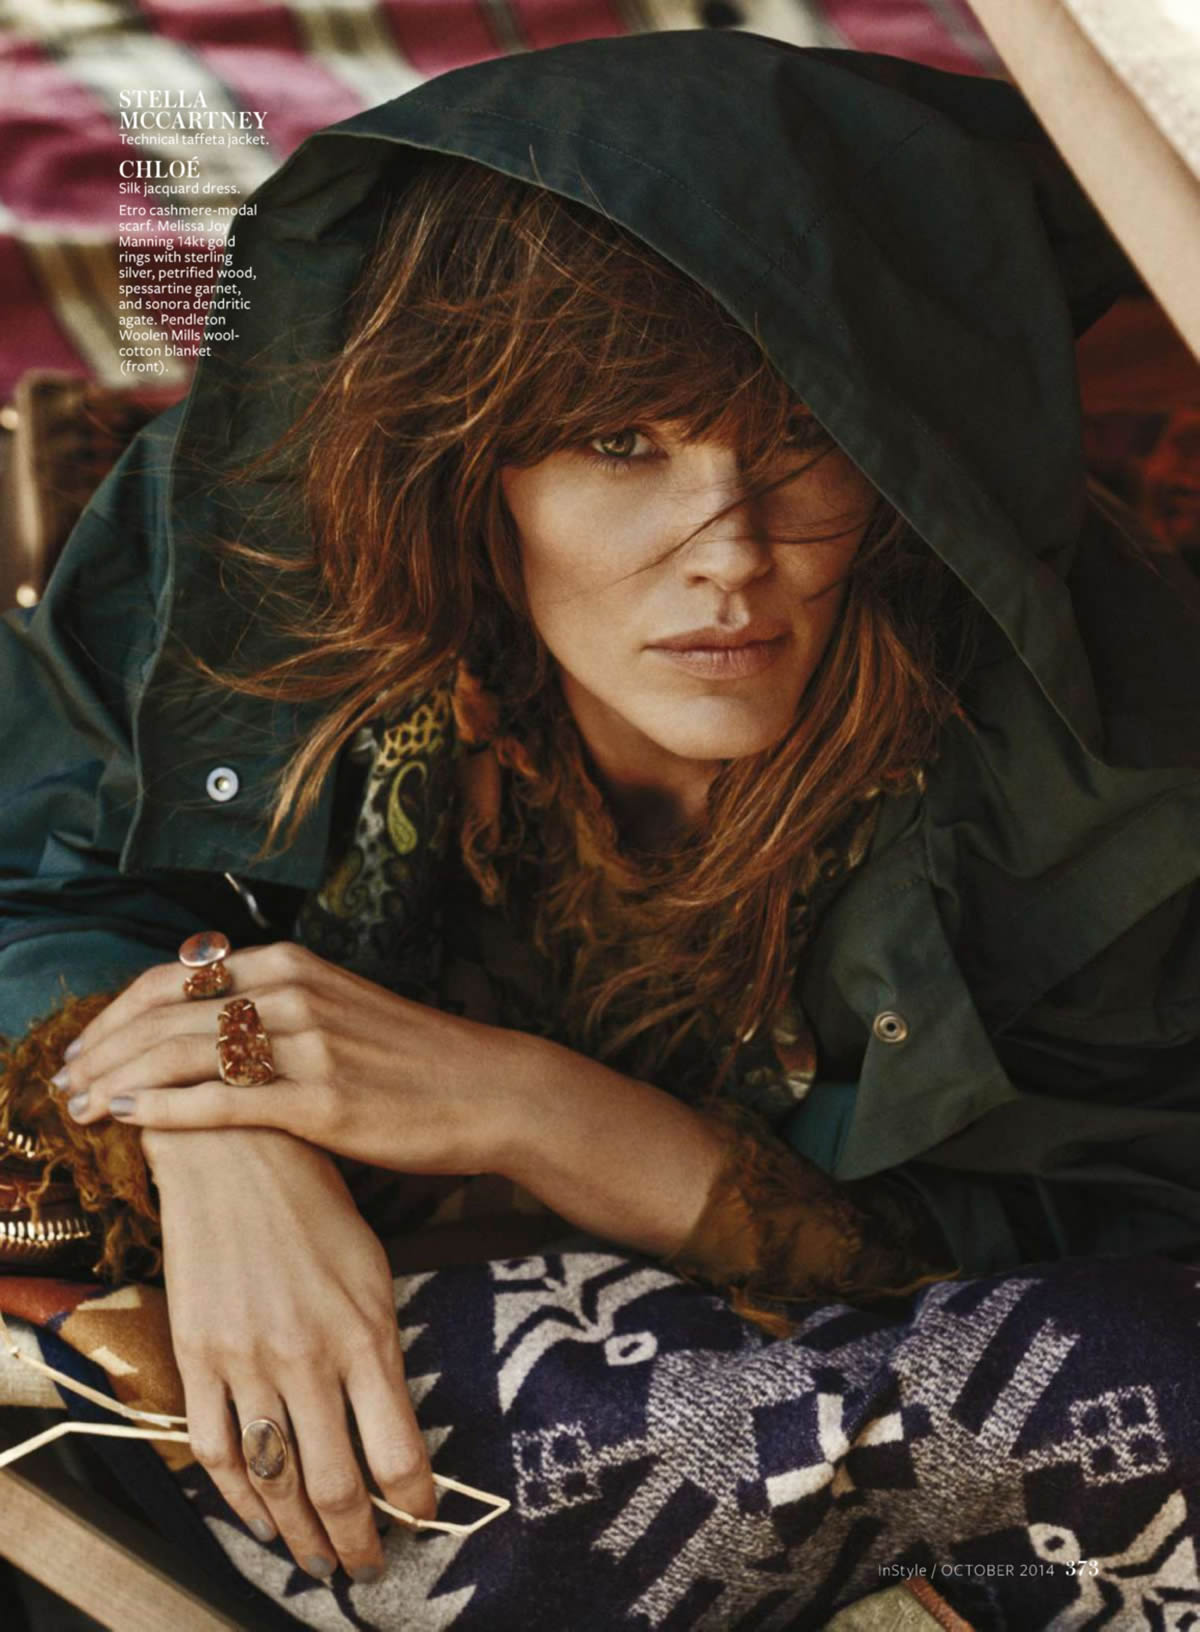 ��� ������ ����� ��� ���� ���� InStyle �������� ������� ������ 2014